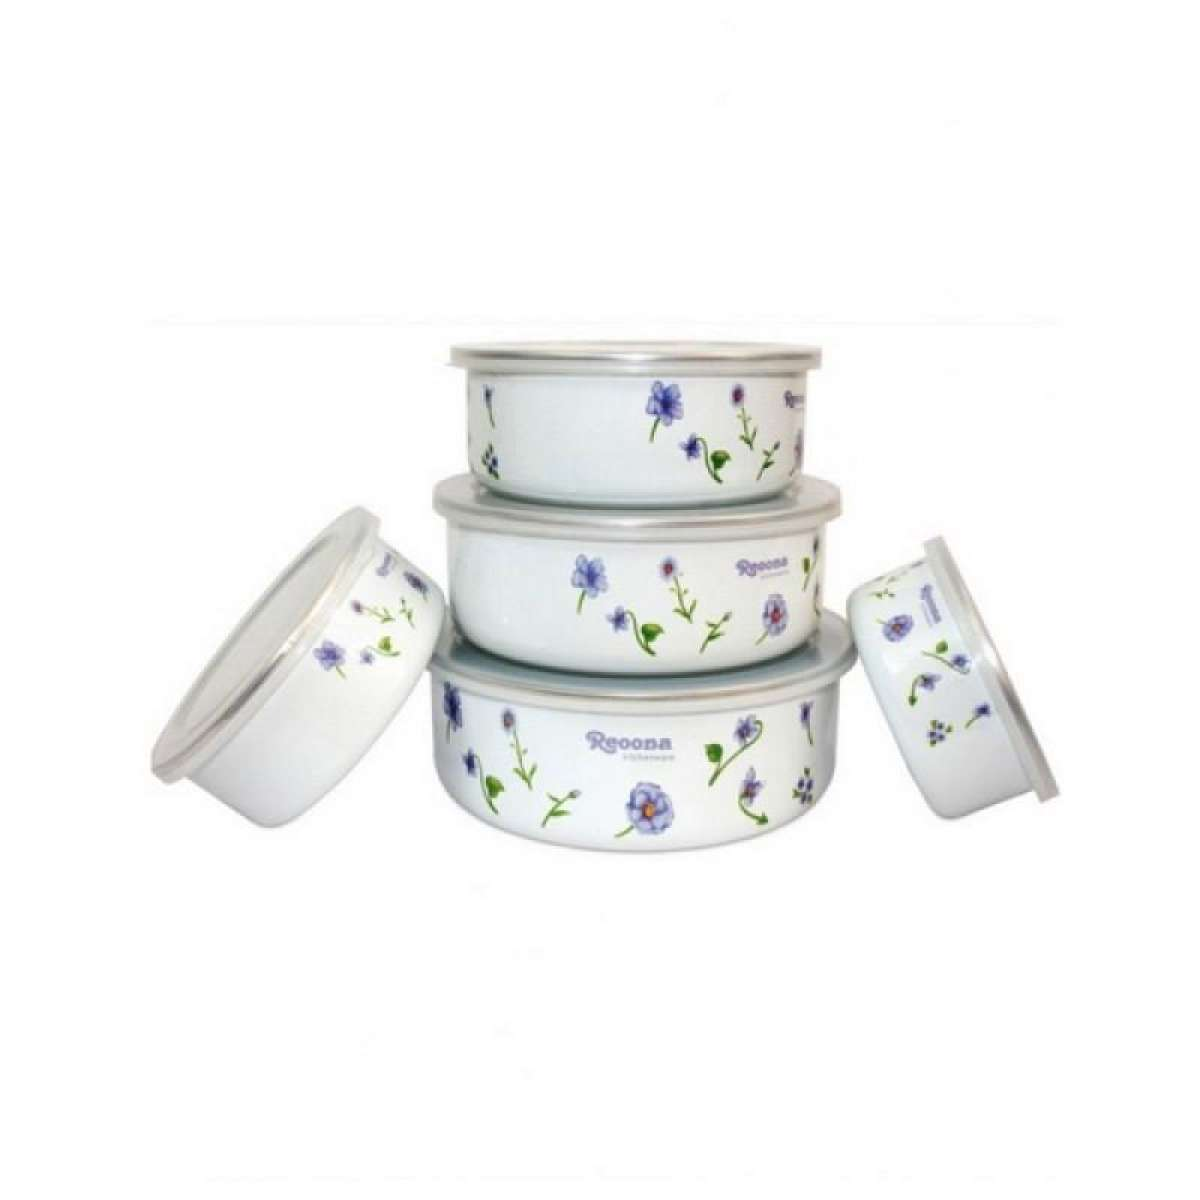 Kitchen Pot Set 5 PCS Gallery Image 1